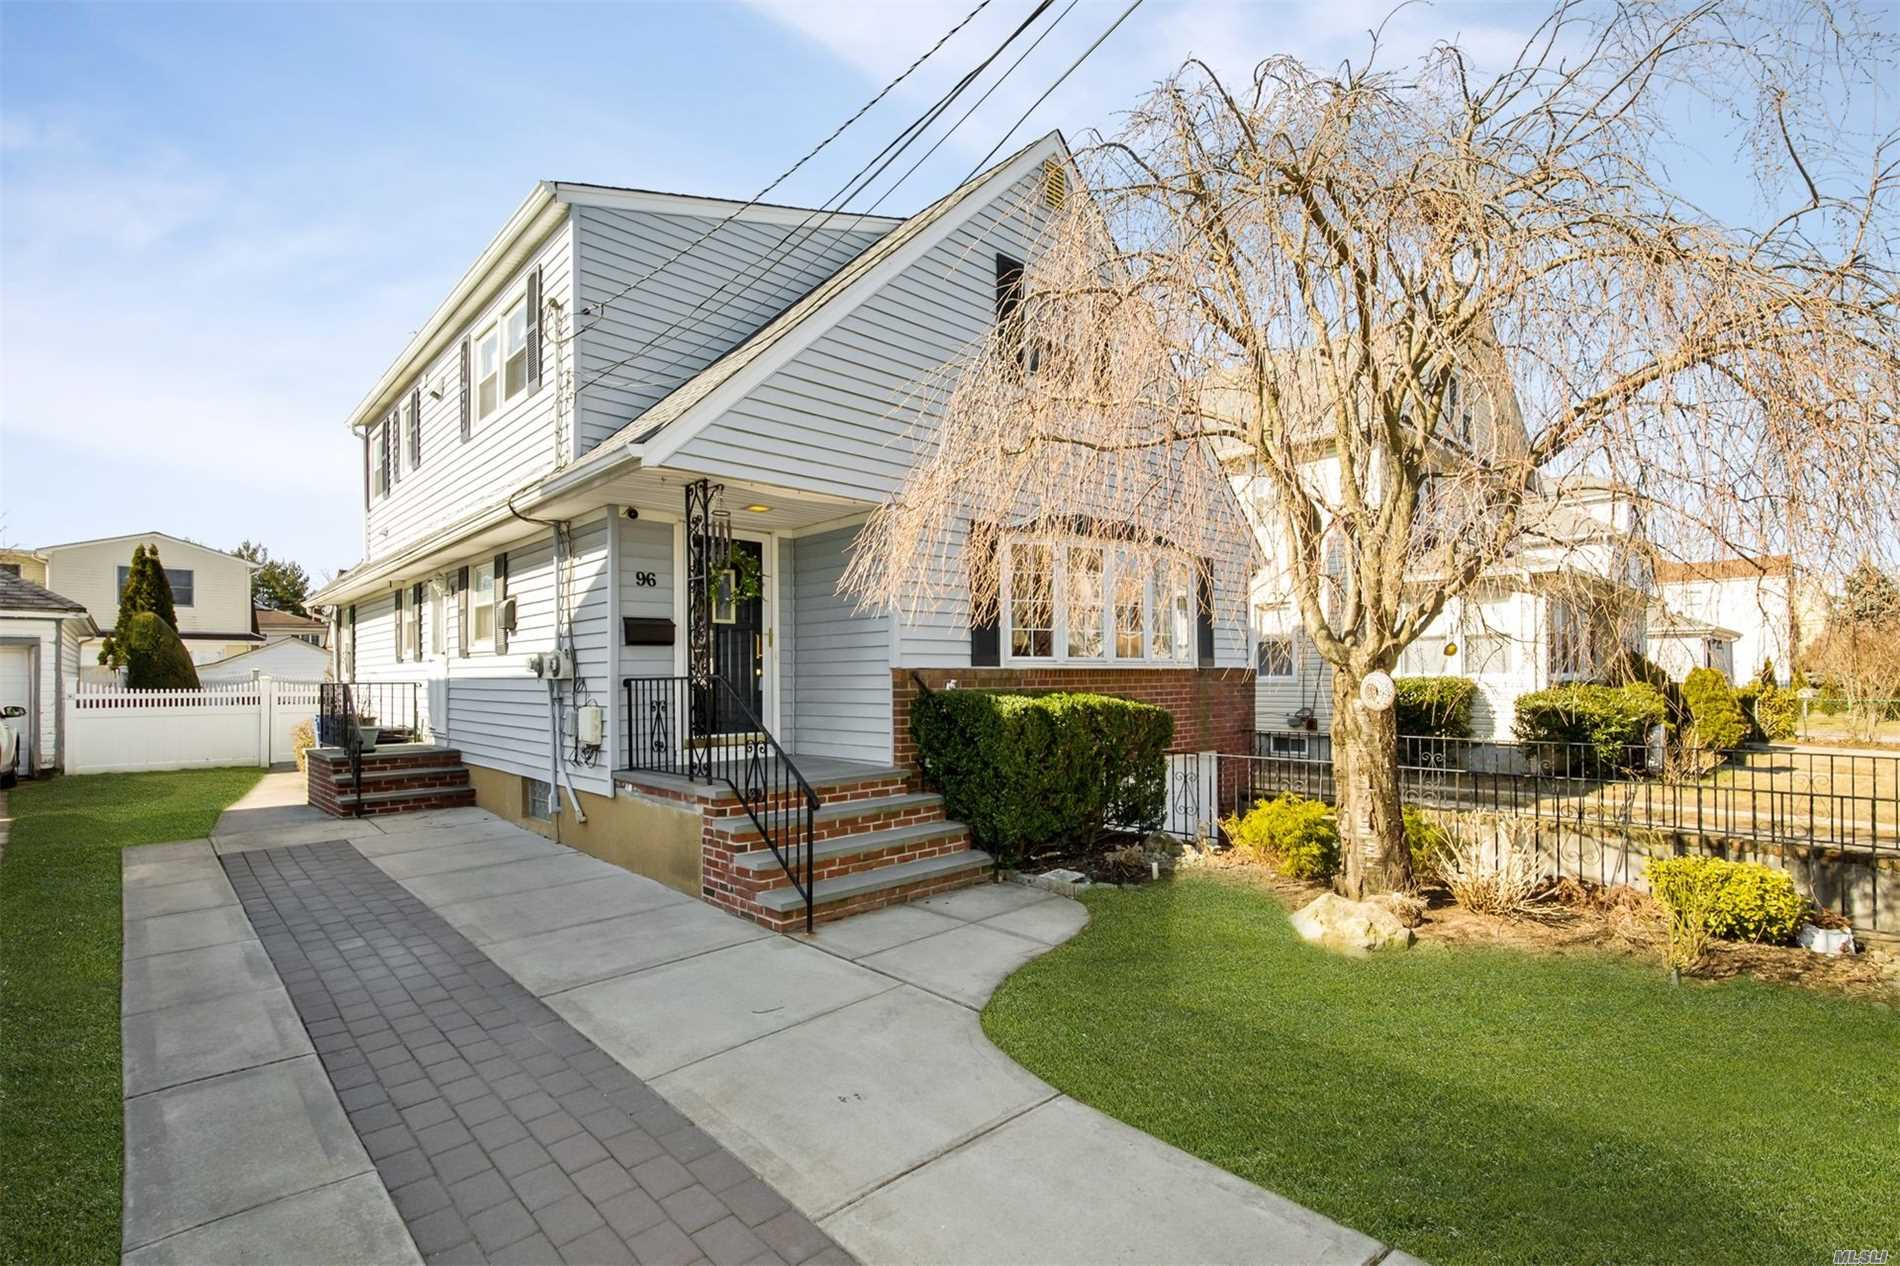 Don't Miss This Rare Opportunity to view this Beautiful and Very Spacious Home. This Home Offers 5 Bedrooms, 3 Full Baths, Wood Burning Fireplace With Hardwood Floors Throughout. This Home Has A Walk In Cedar Closet Along With Other Large Closets And Storage Space. This Is A Perfect Home For An Extended Family. Minutes From LIRR Or Bus To Queens. Possible M/D With Proper Permits.